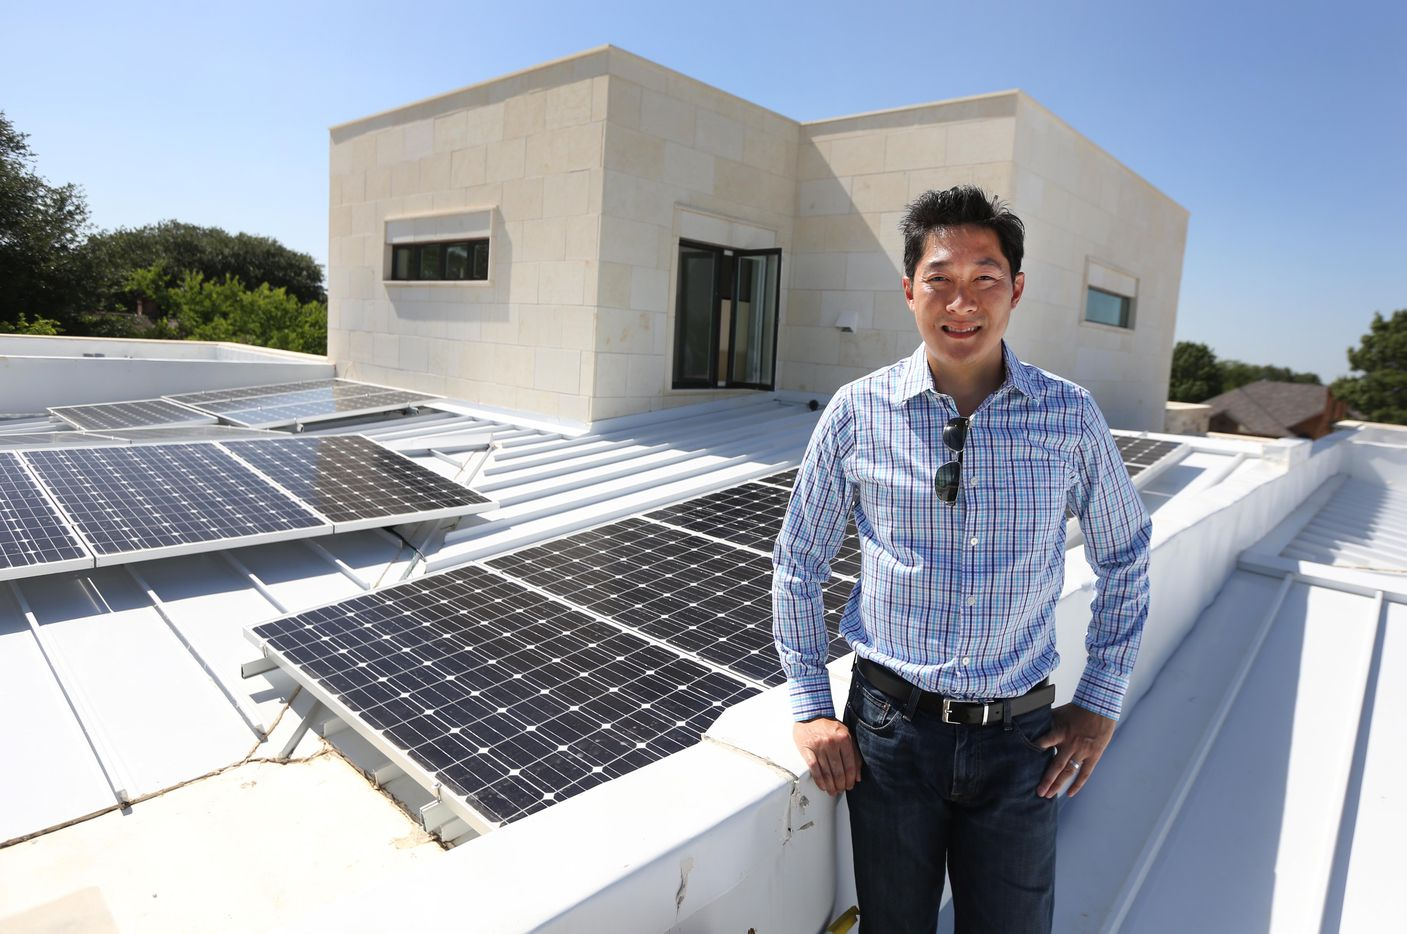 A look at the solar panels on the roof of the New Modern Home, a prototype house that builder Jimmy Tanghongs has built, which needs no exterior maintenance and produces its own electricity.